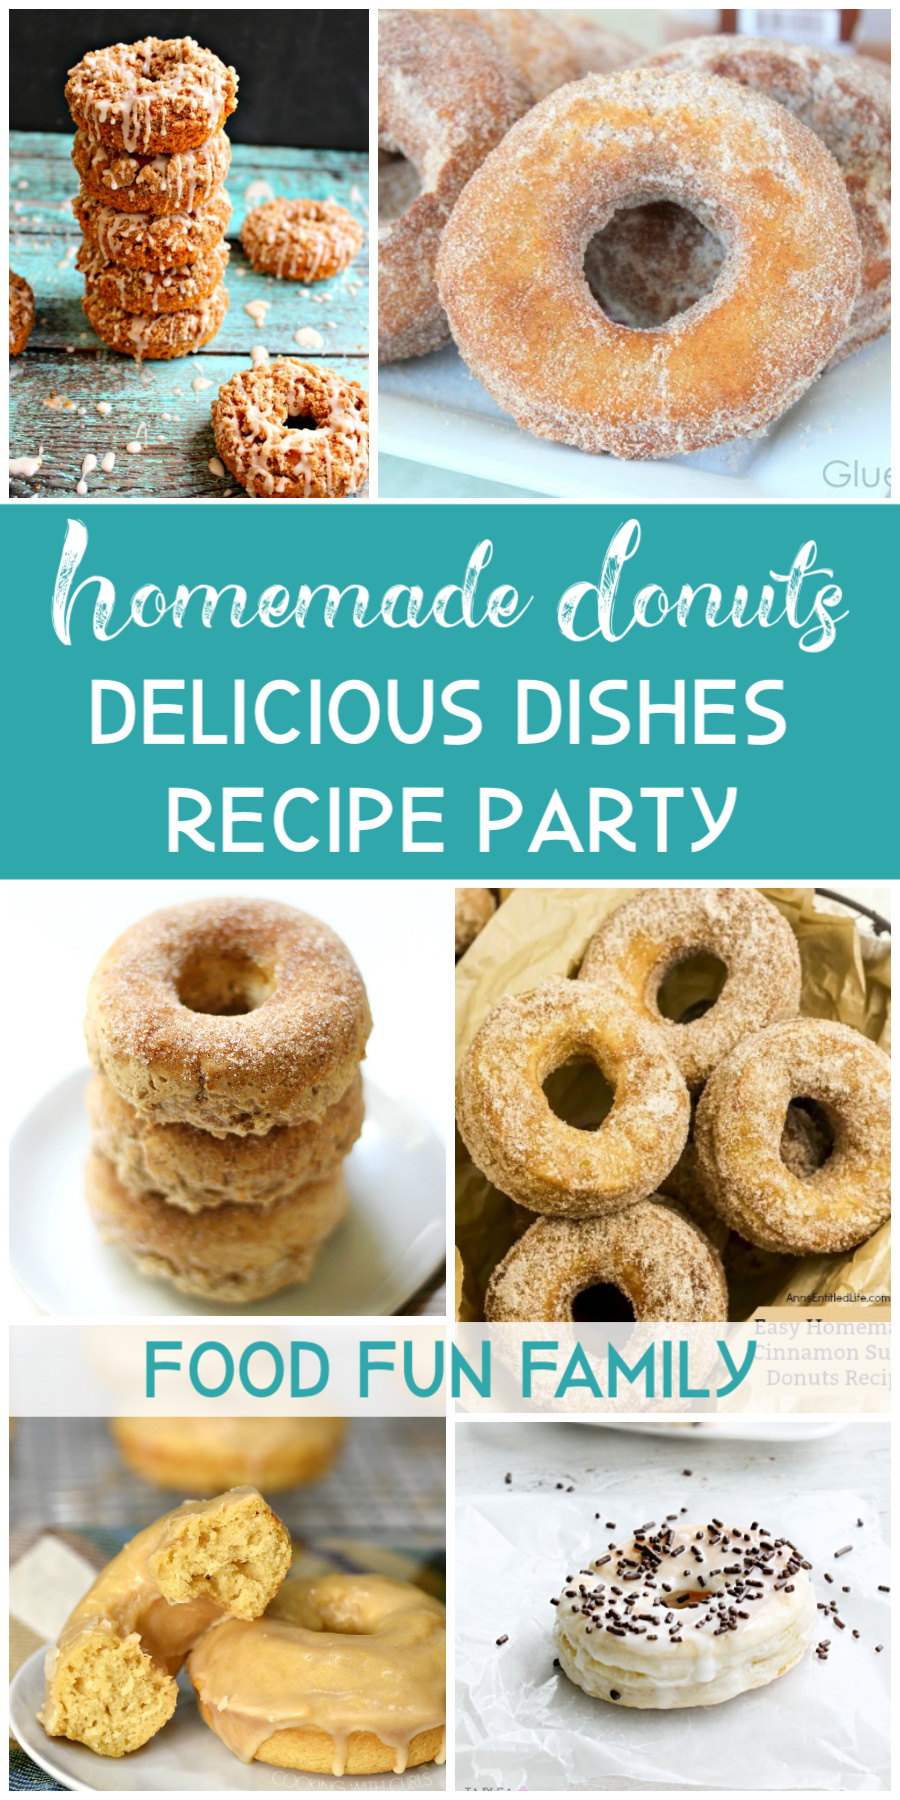 Homemade donuts - a Delicious Dishes Recipe Party with Food Fun Family